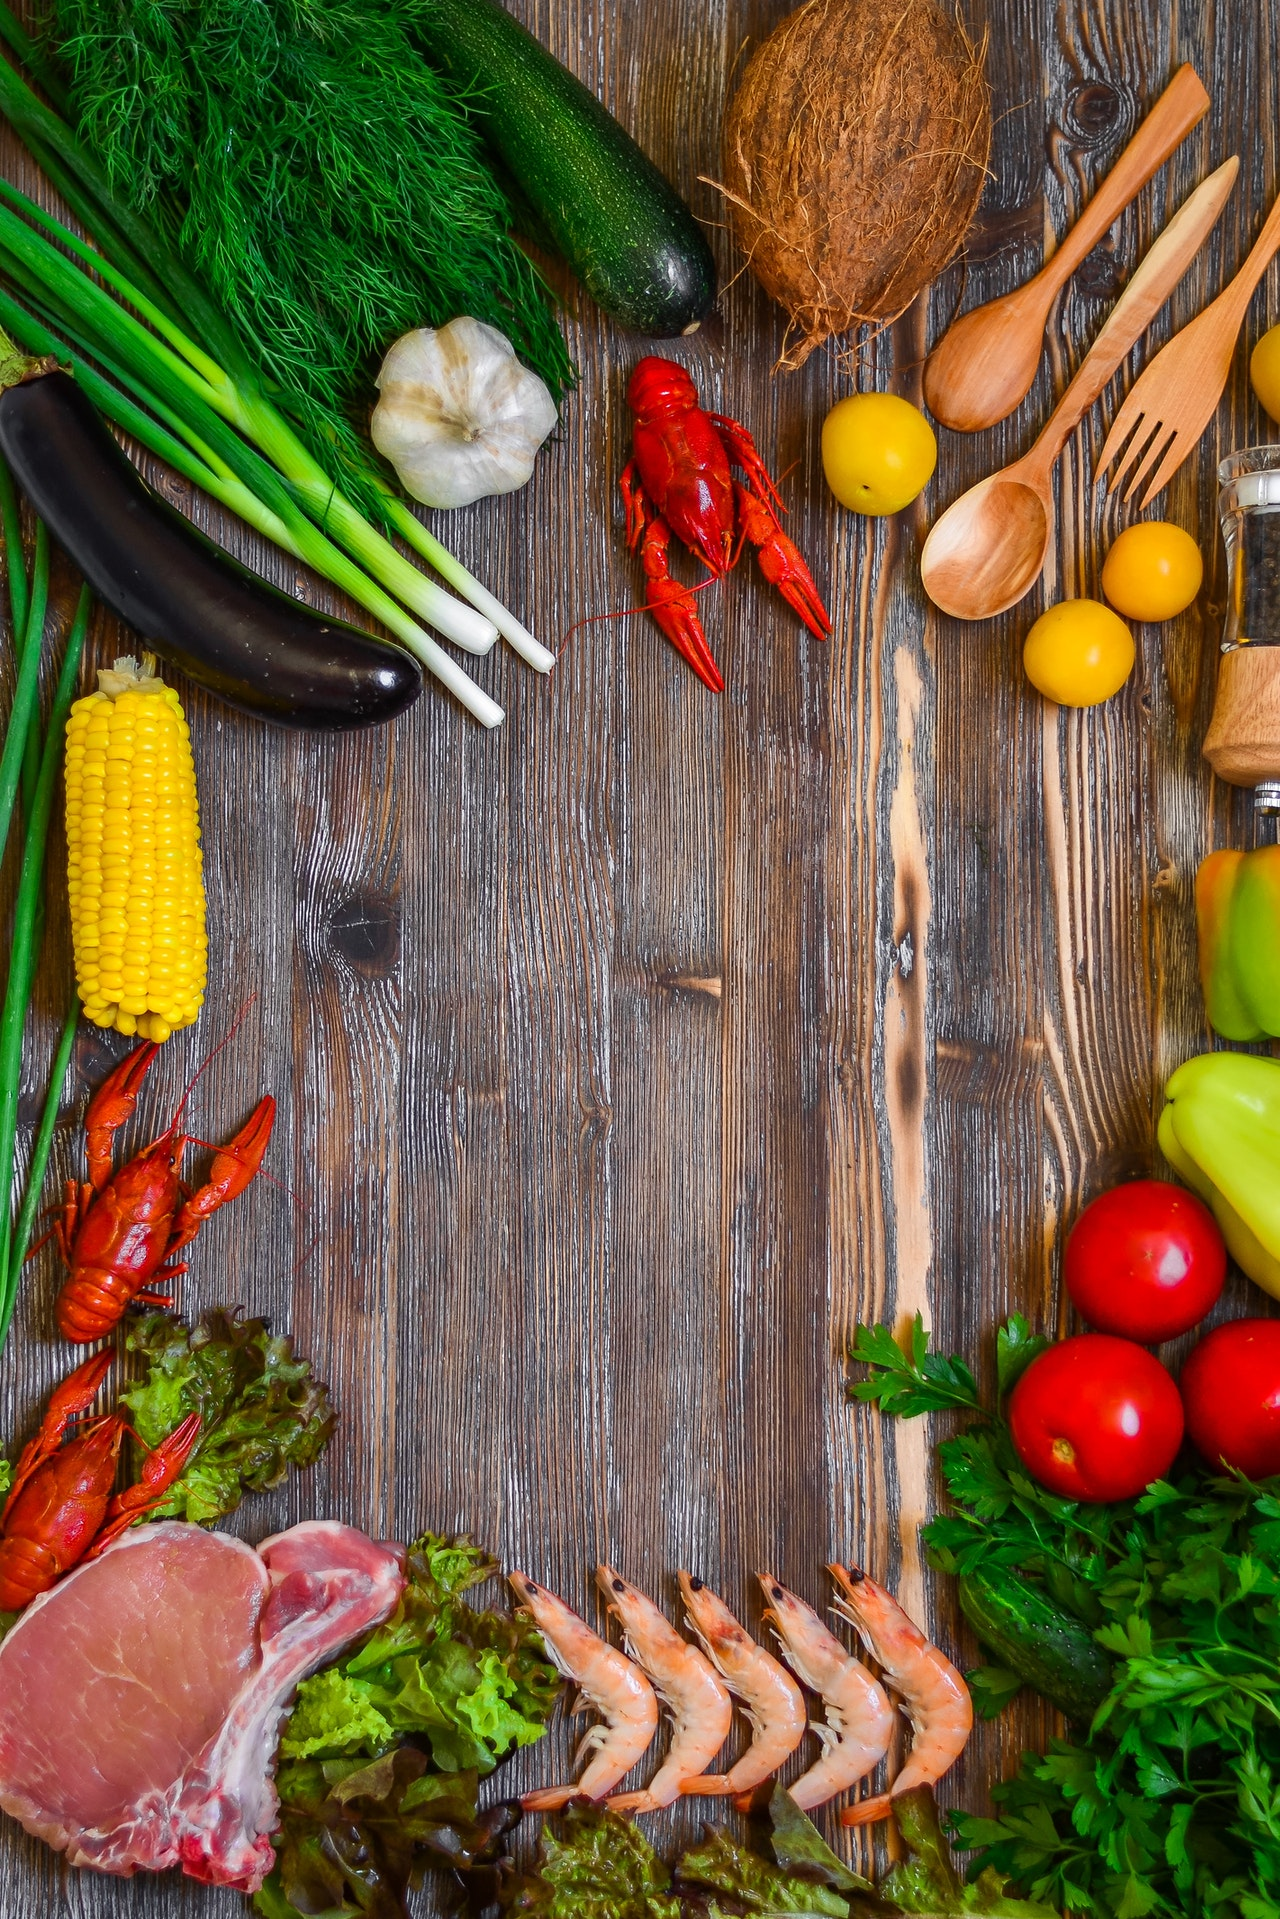 assorted vegetables on wooden table